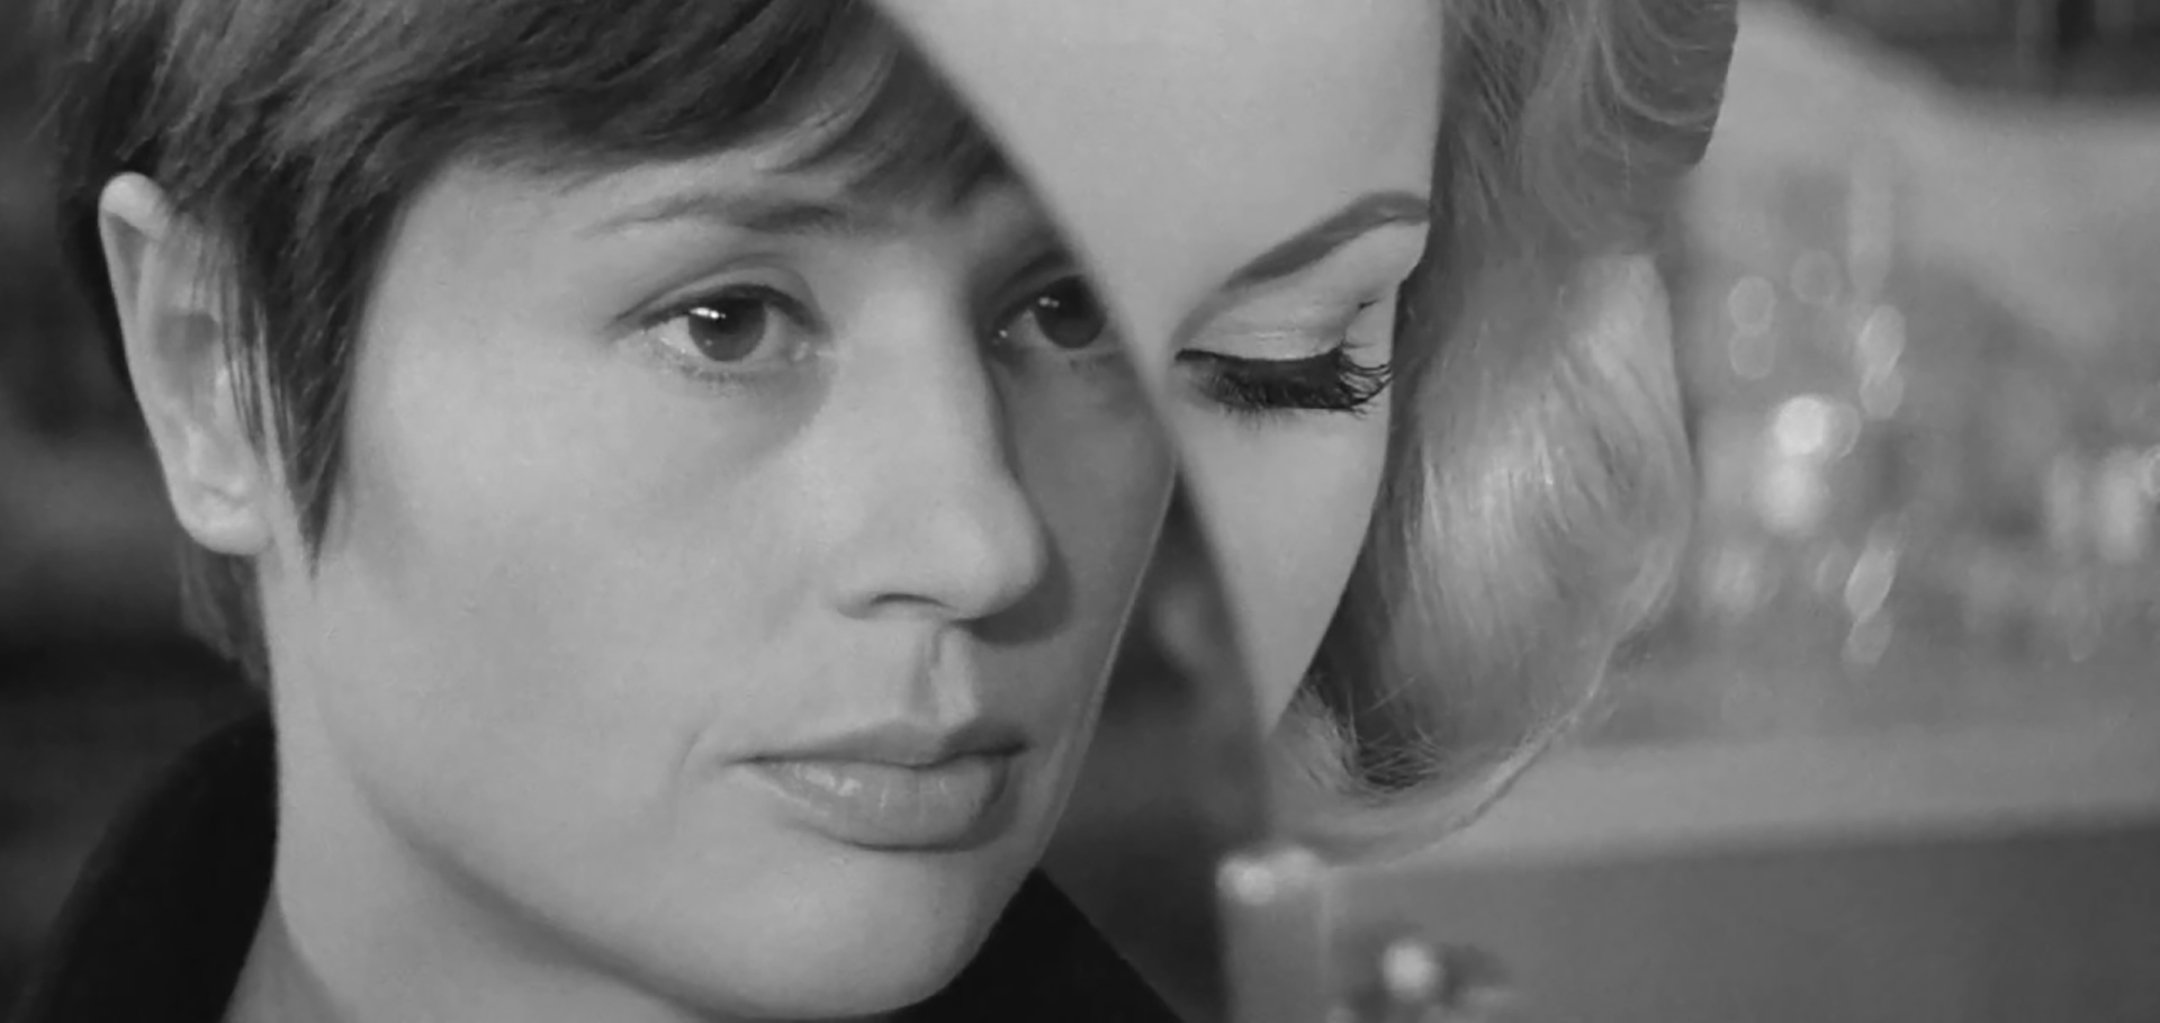 Bibbi Andersson and Harriet Andersson, faces superimposed on top of each other in a still from 'The Girls' (1968)